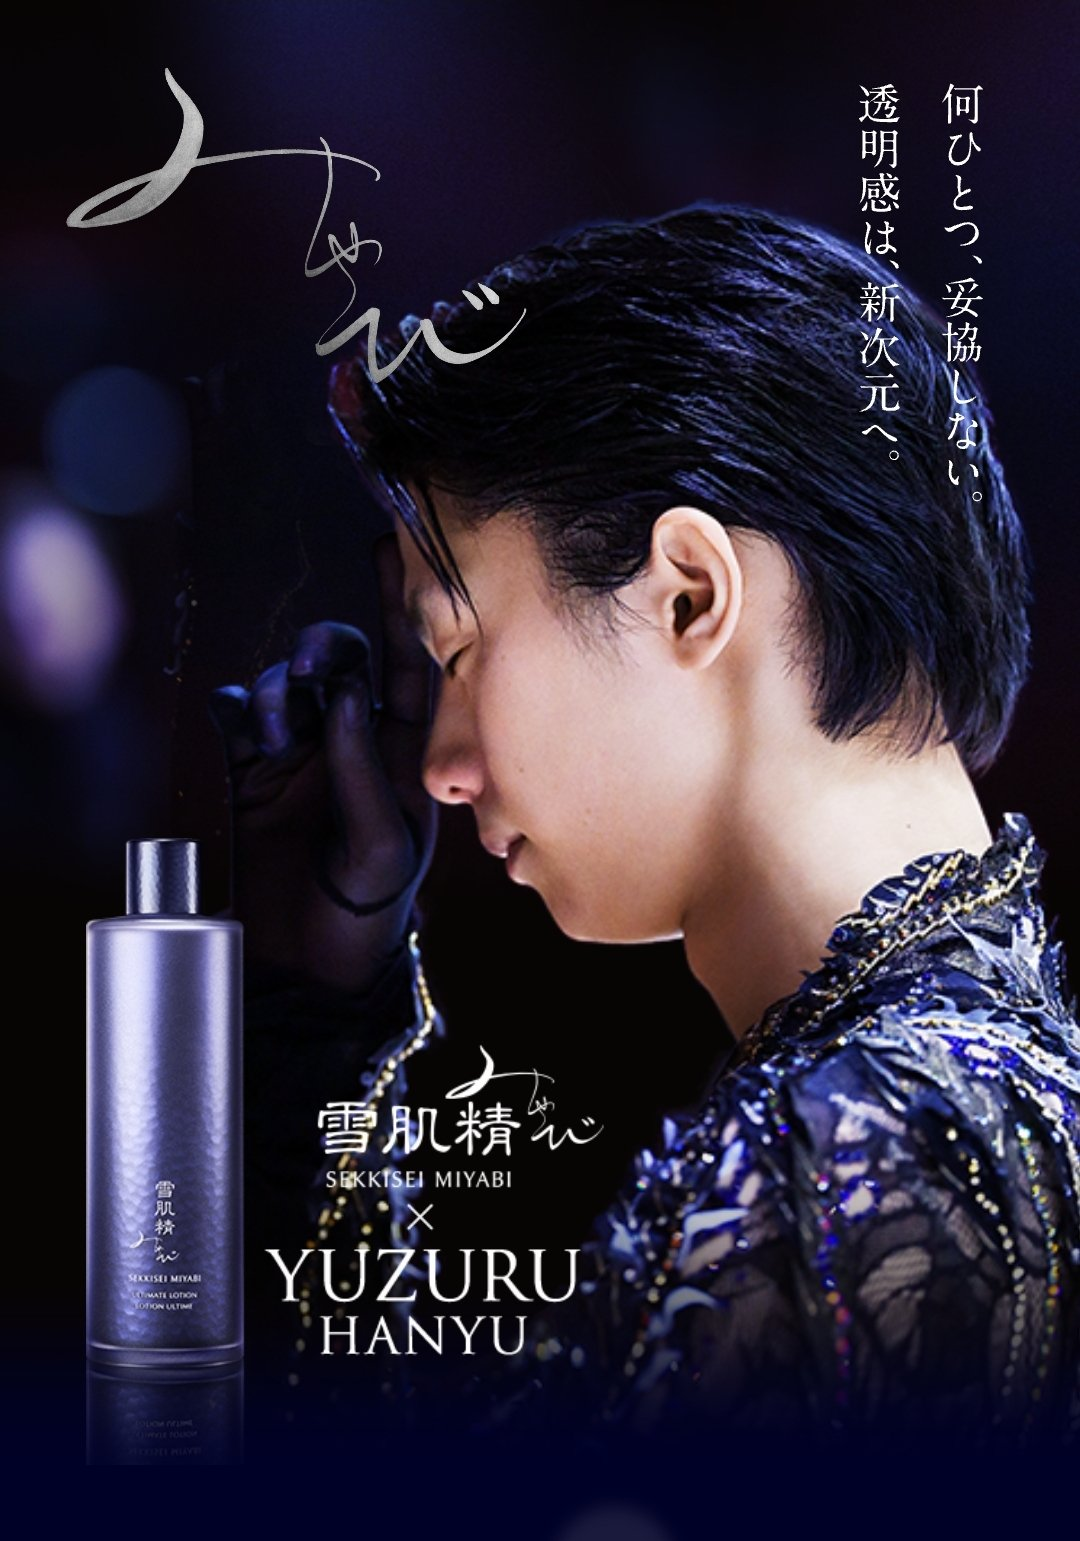 YuzuNews 14, 15, 16, 17, 18, 22, 23, 24, 25 gennaio 2020 – Yuzuru Hanyu a Stars On Ice Japan!